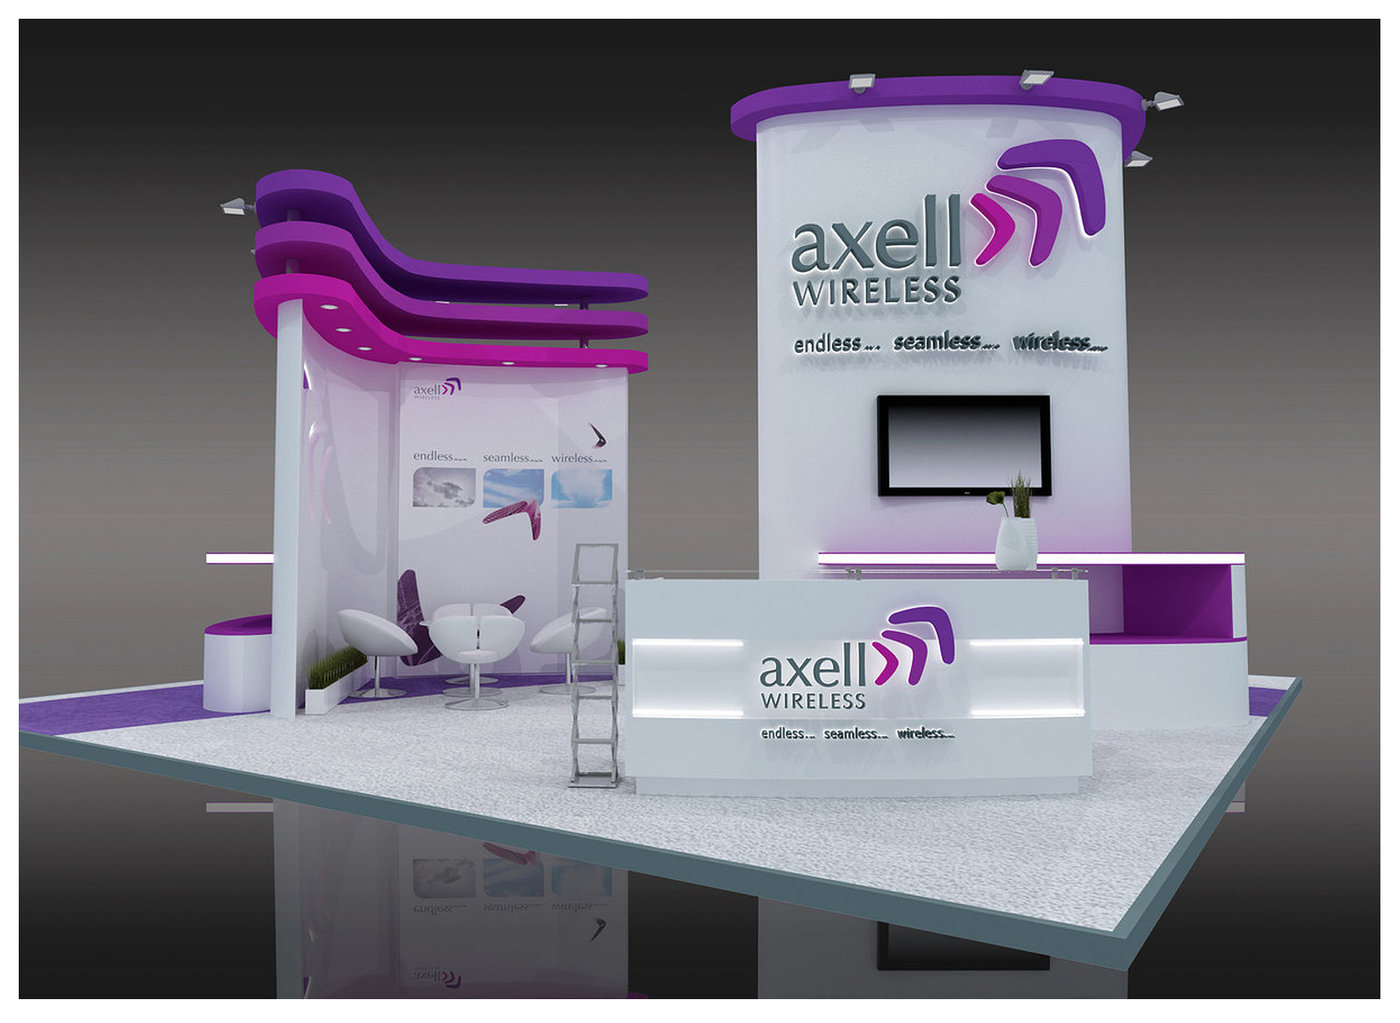 Exhibition Stand Vat : Exhibition stand designs by jemmica ann bolor santos at